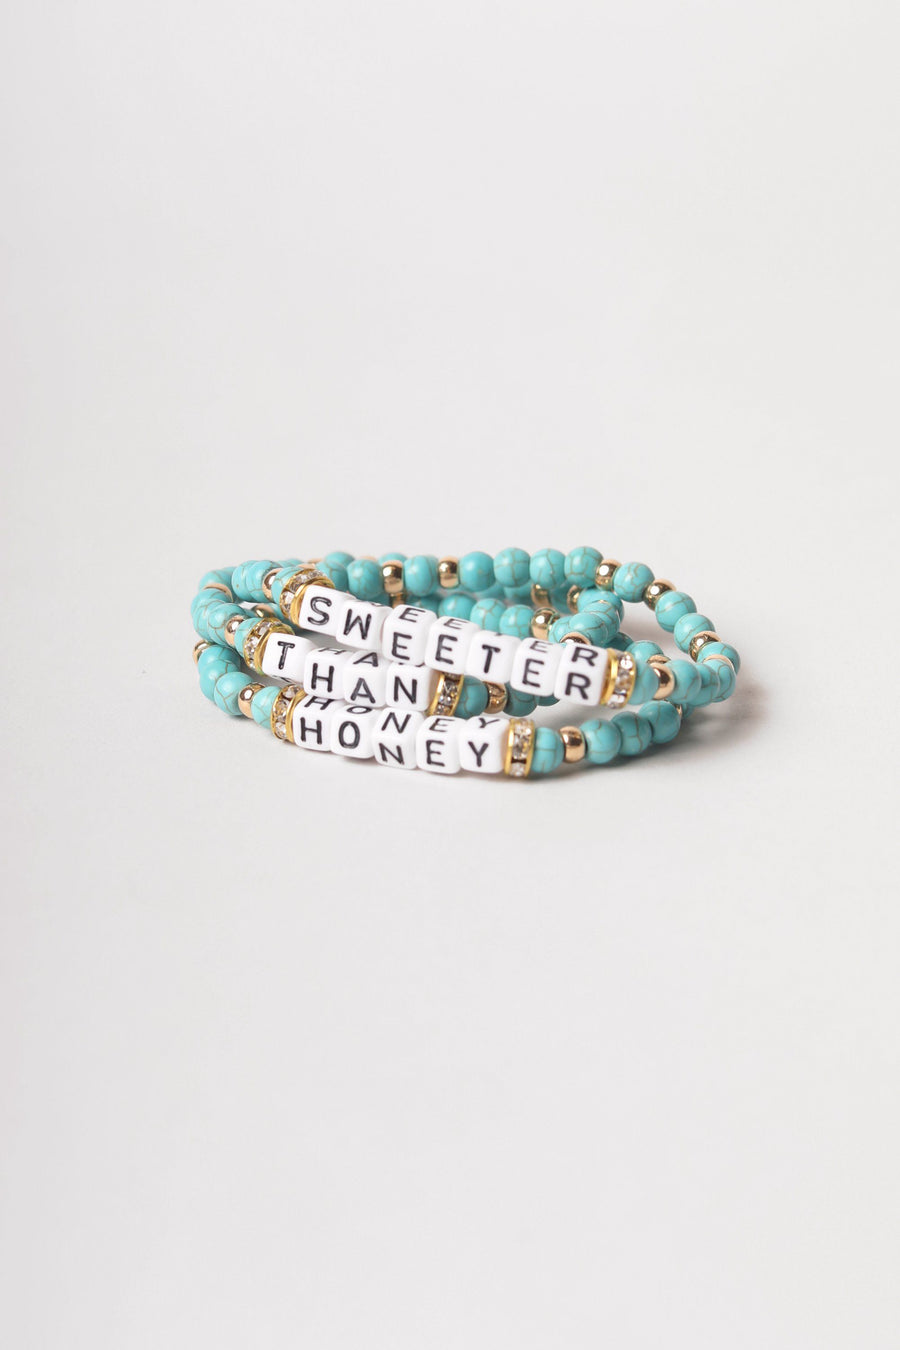 Sweeter than Honey Bracelet Set